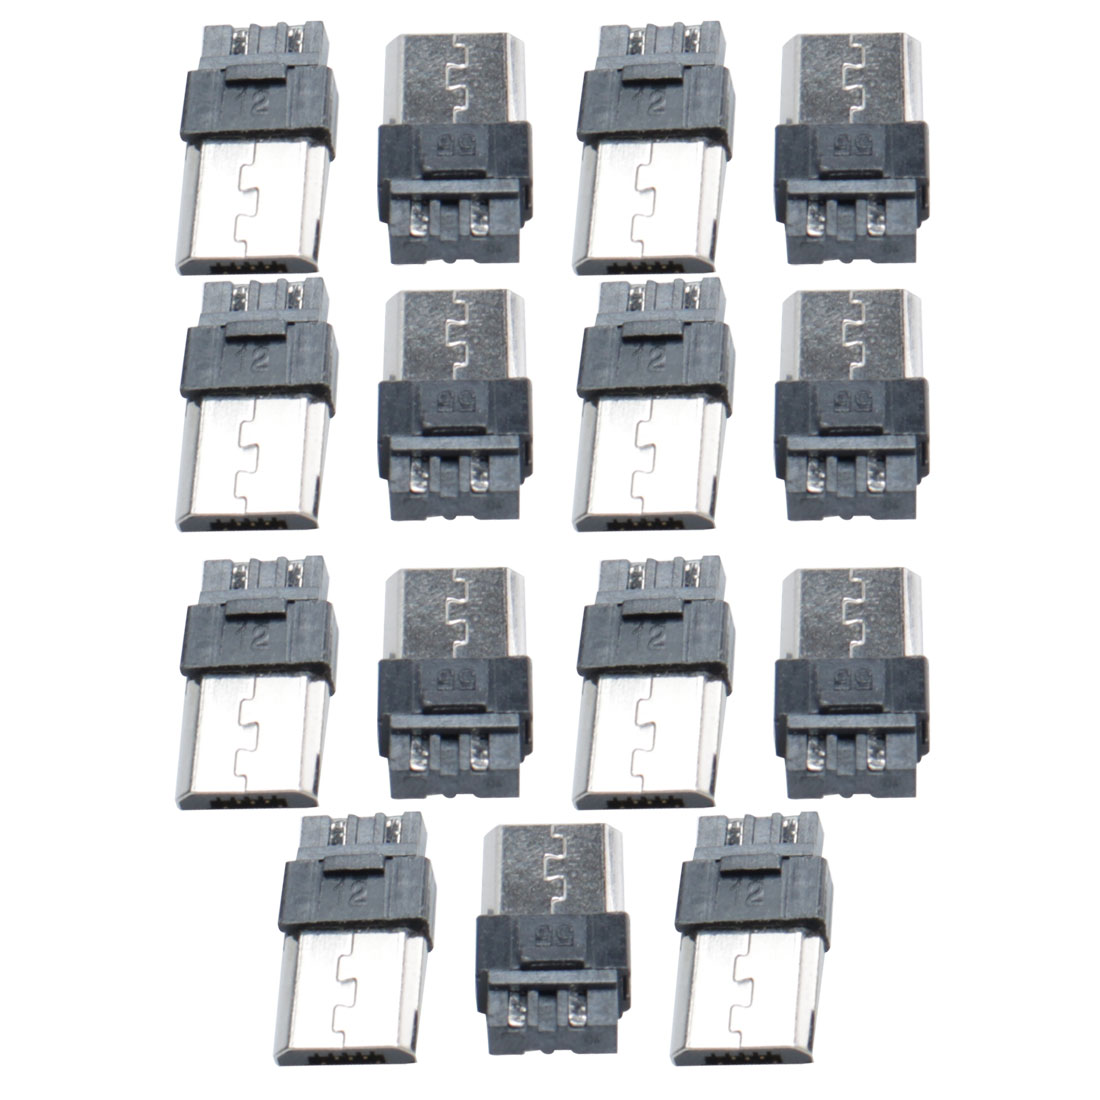 15pcs Mini Micro USB Type B 5-Pin Male Soldering Jack Socket Connector